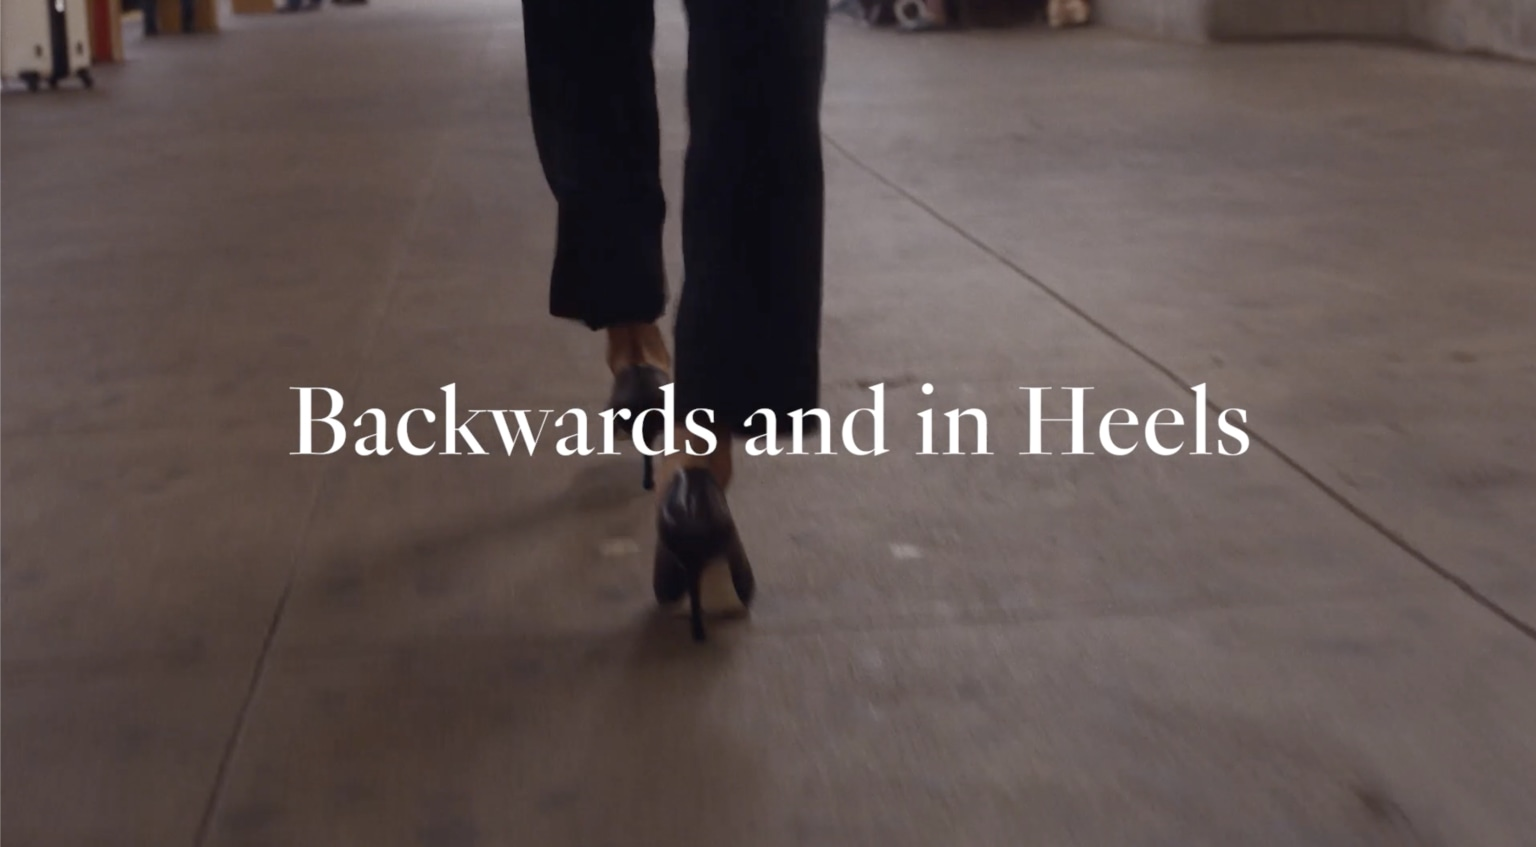 Backwards and in Heels